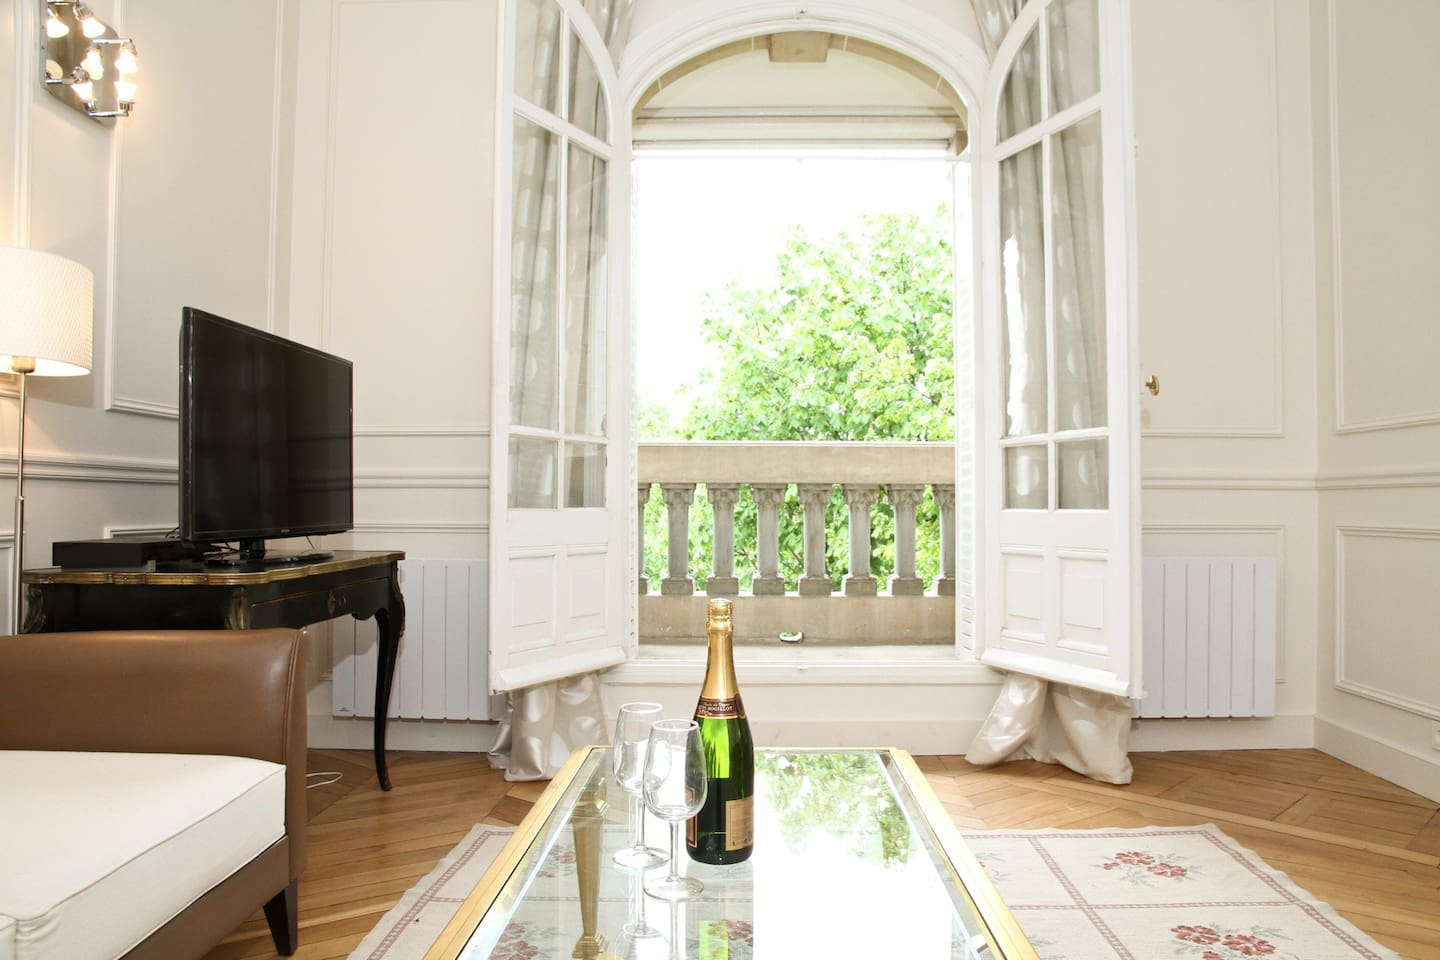 Spacious living room with a balcony overlooking the Champs de Mars Park